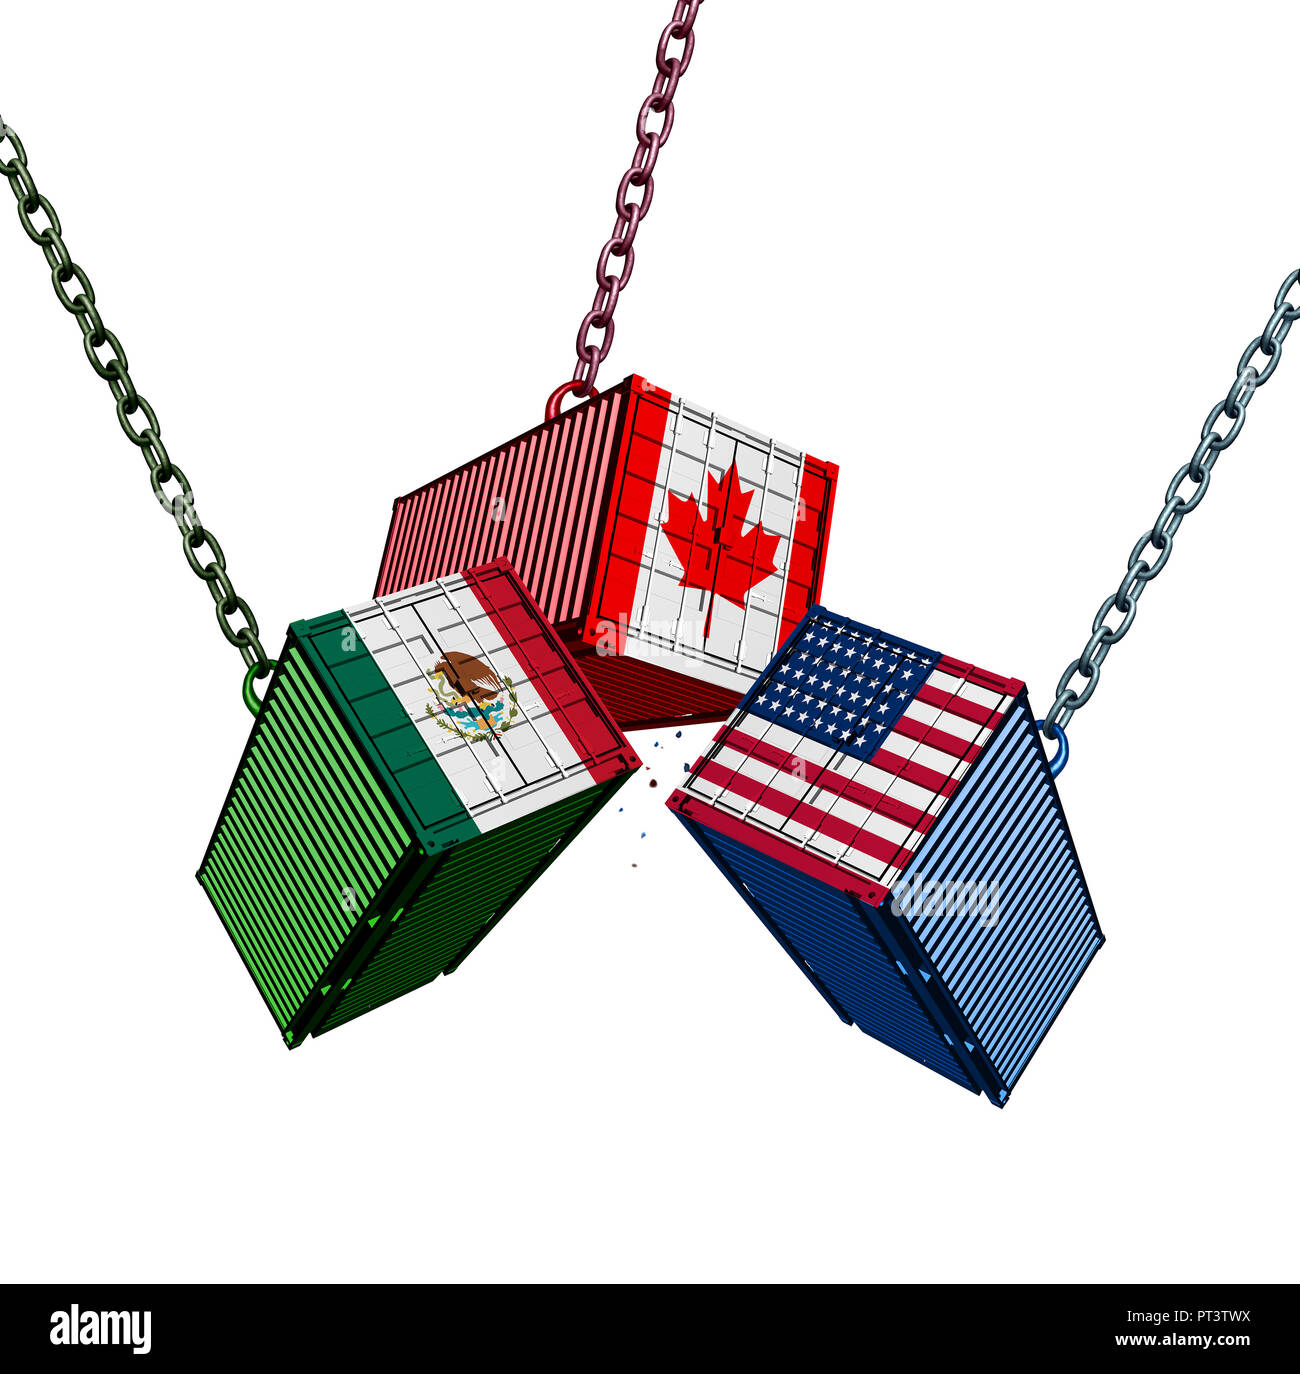 United States Mexico Canada trade agreement as the USMCA with cargo shipping containers joining together as an economic import and export deal. - Stock Image